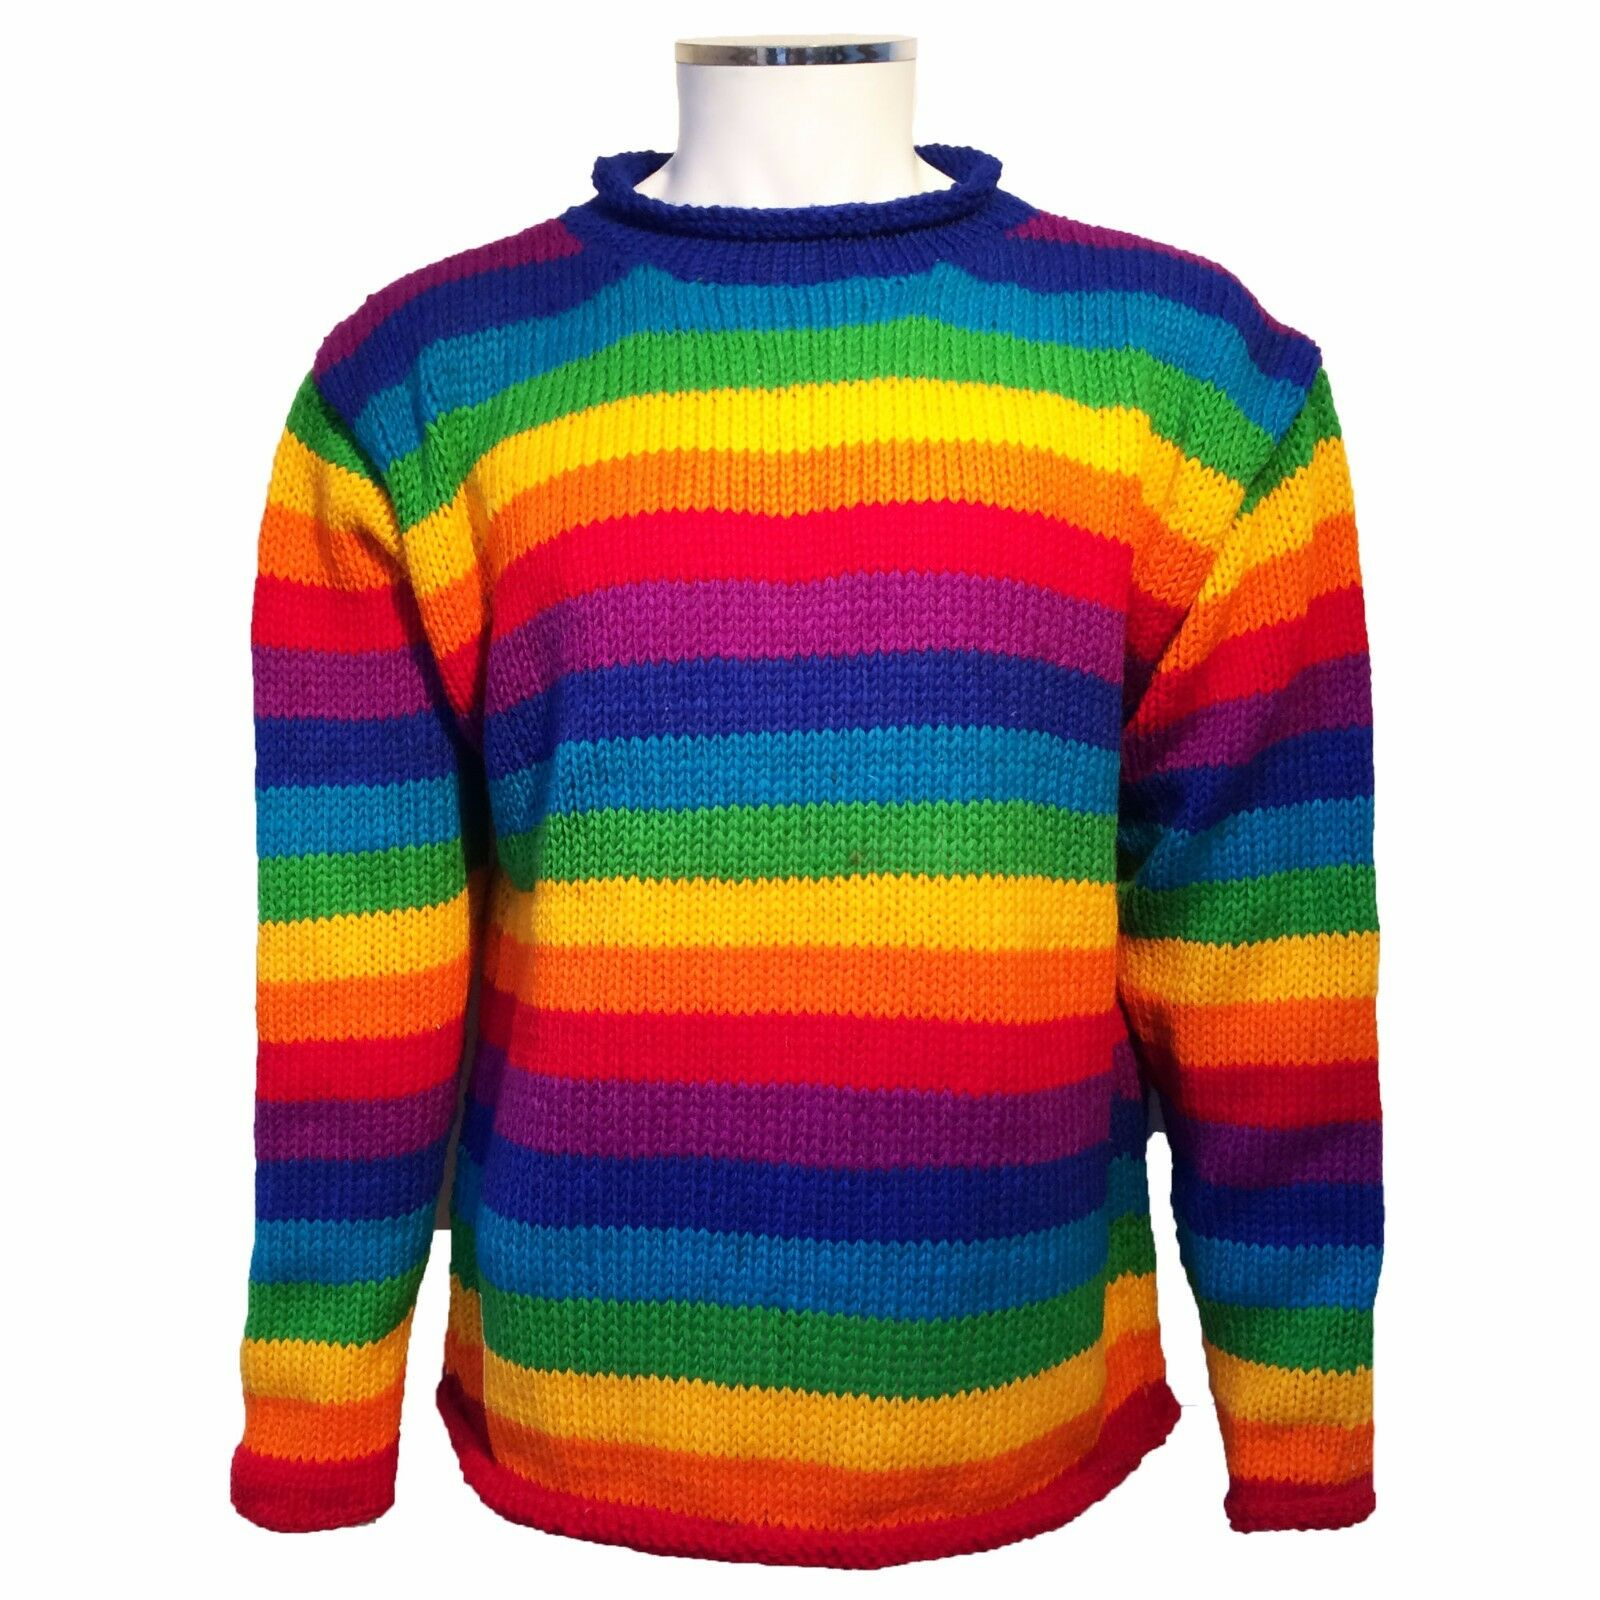 HIPPY BOHO HAND KNITTED BRIGHT RAINBOW STRIPE JUMPER FESTIVAL CAMPING CAMPERVAN